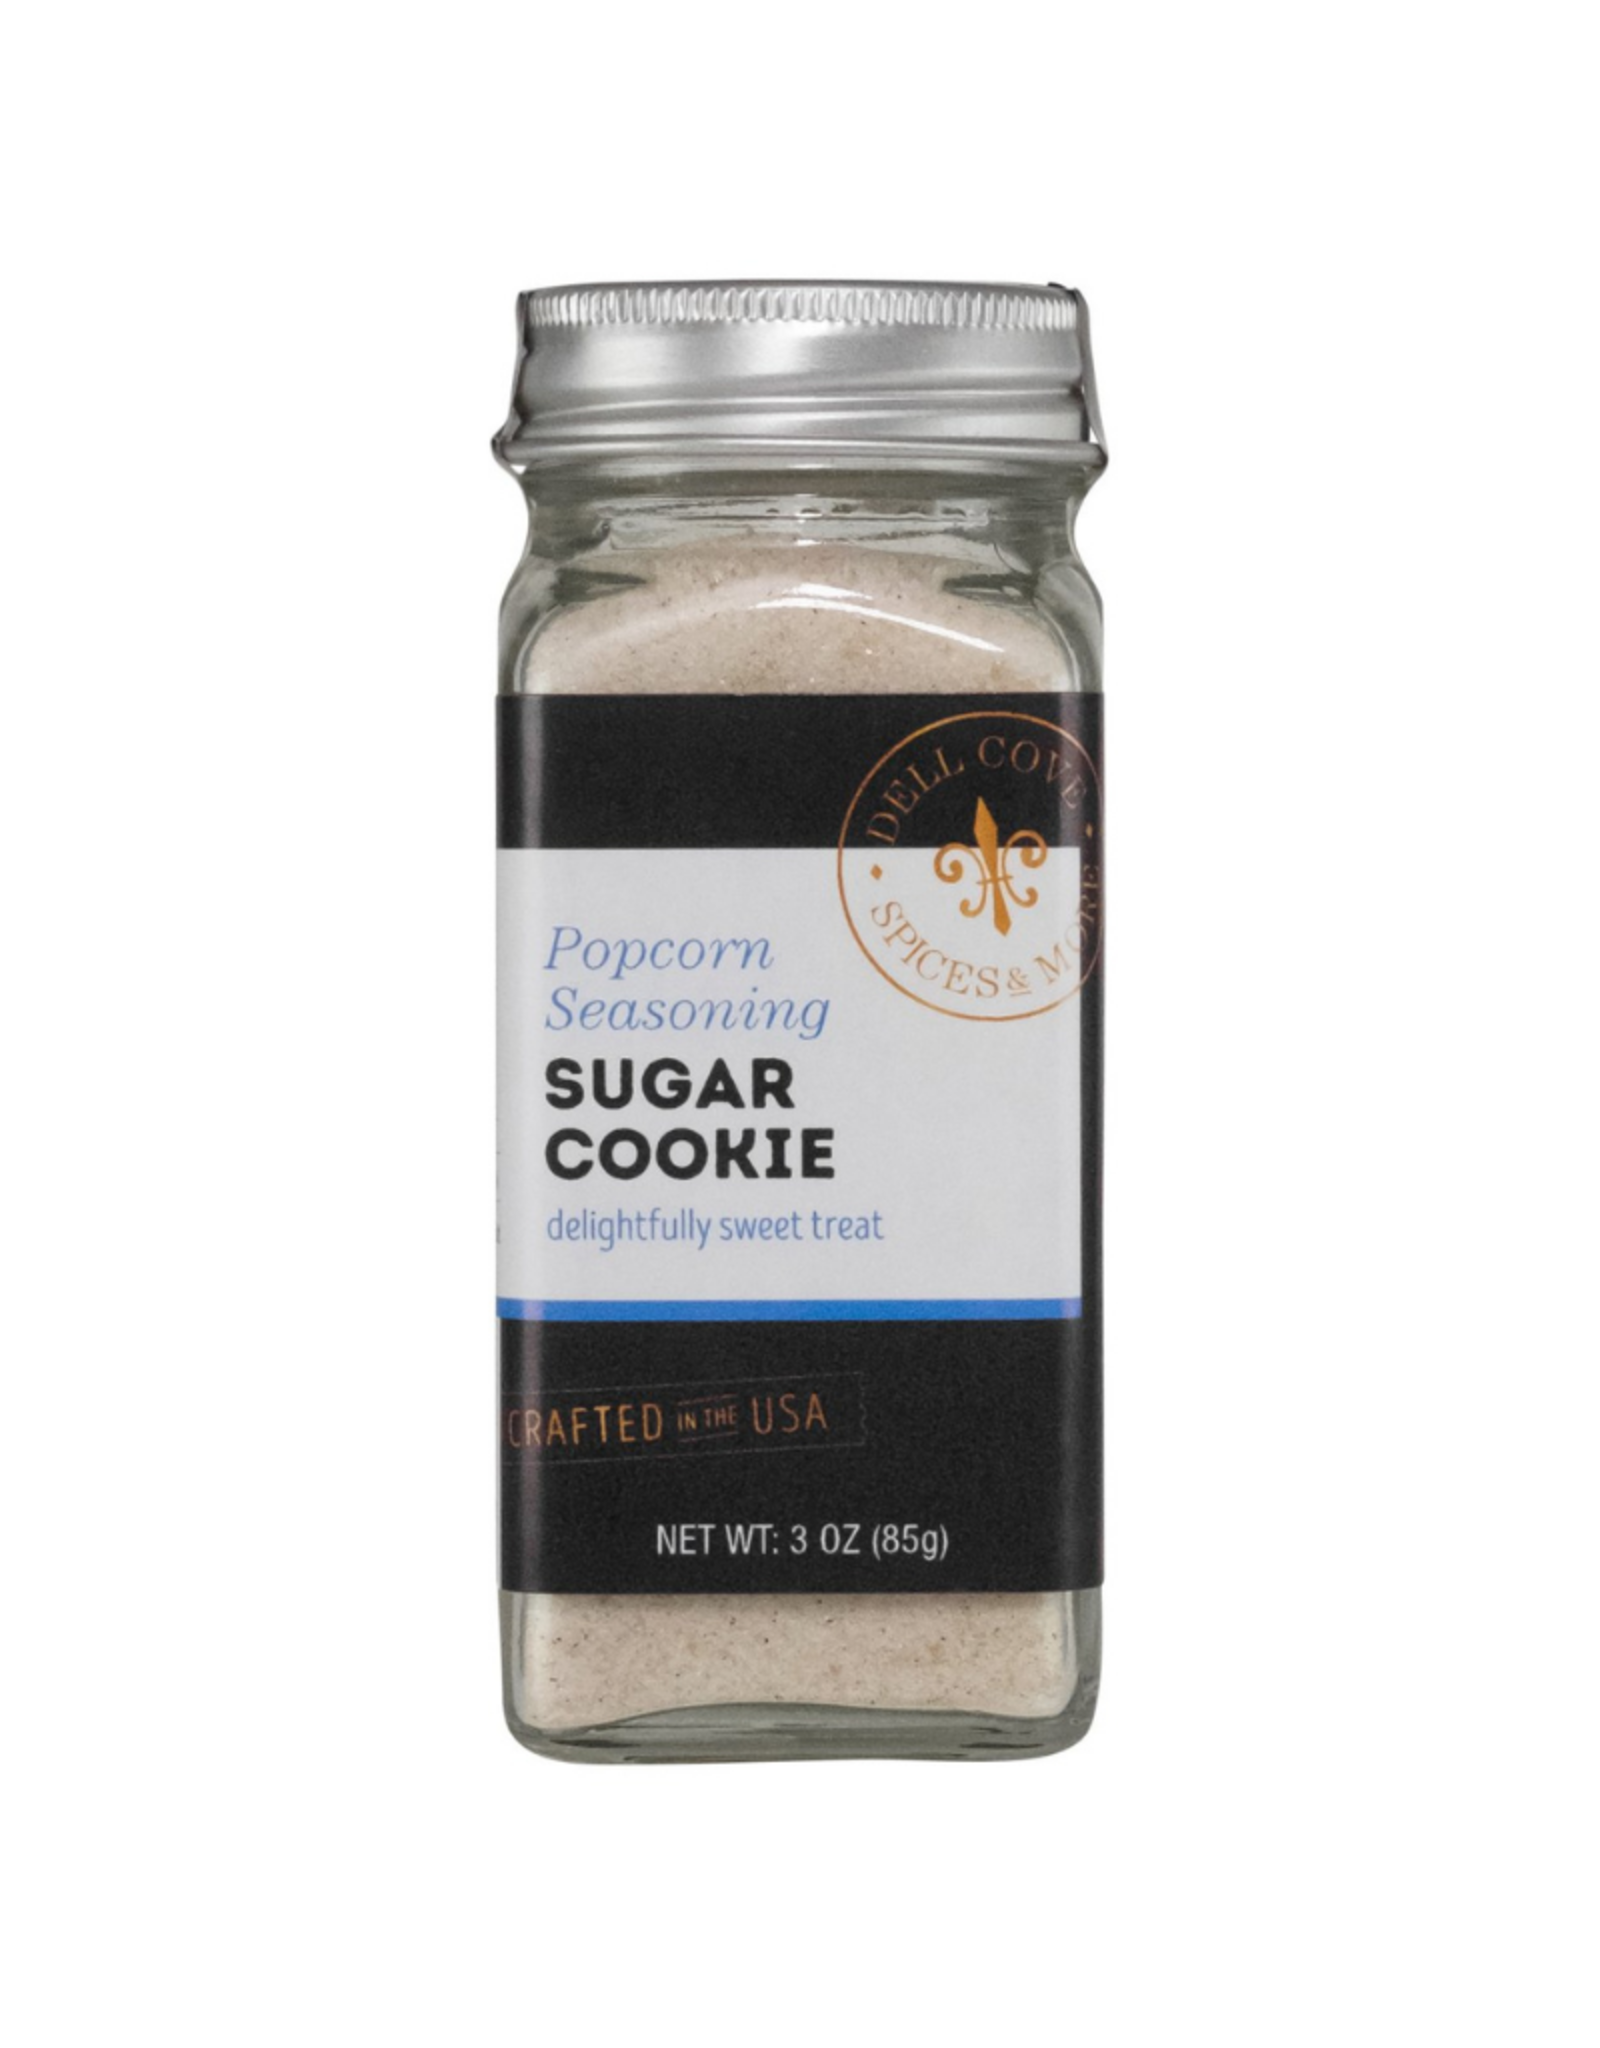 Dell Cove Spices & More Co. Sweet Popcorn Seasoning - Sugar Cookie